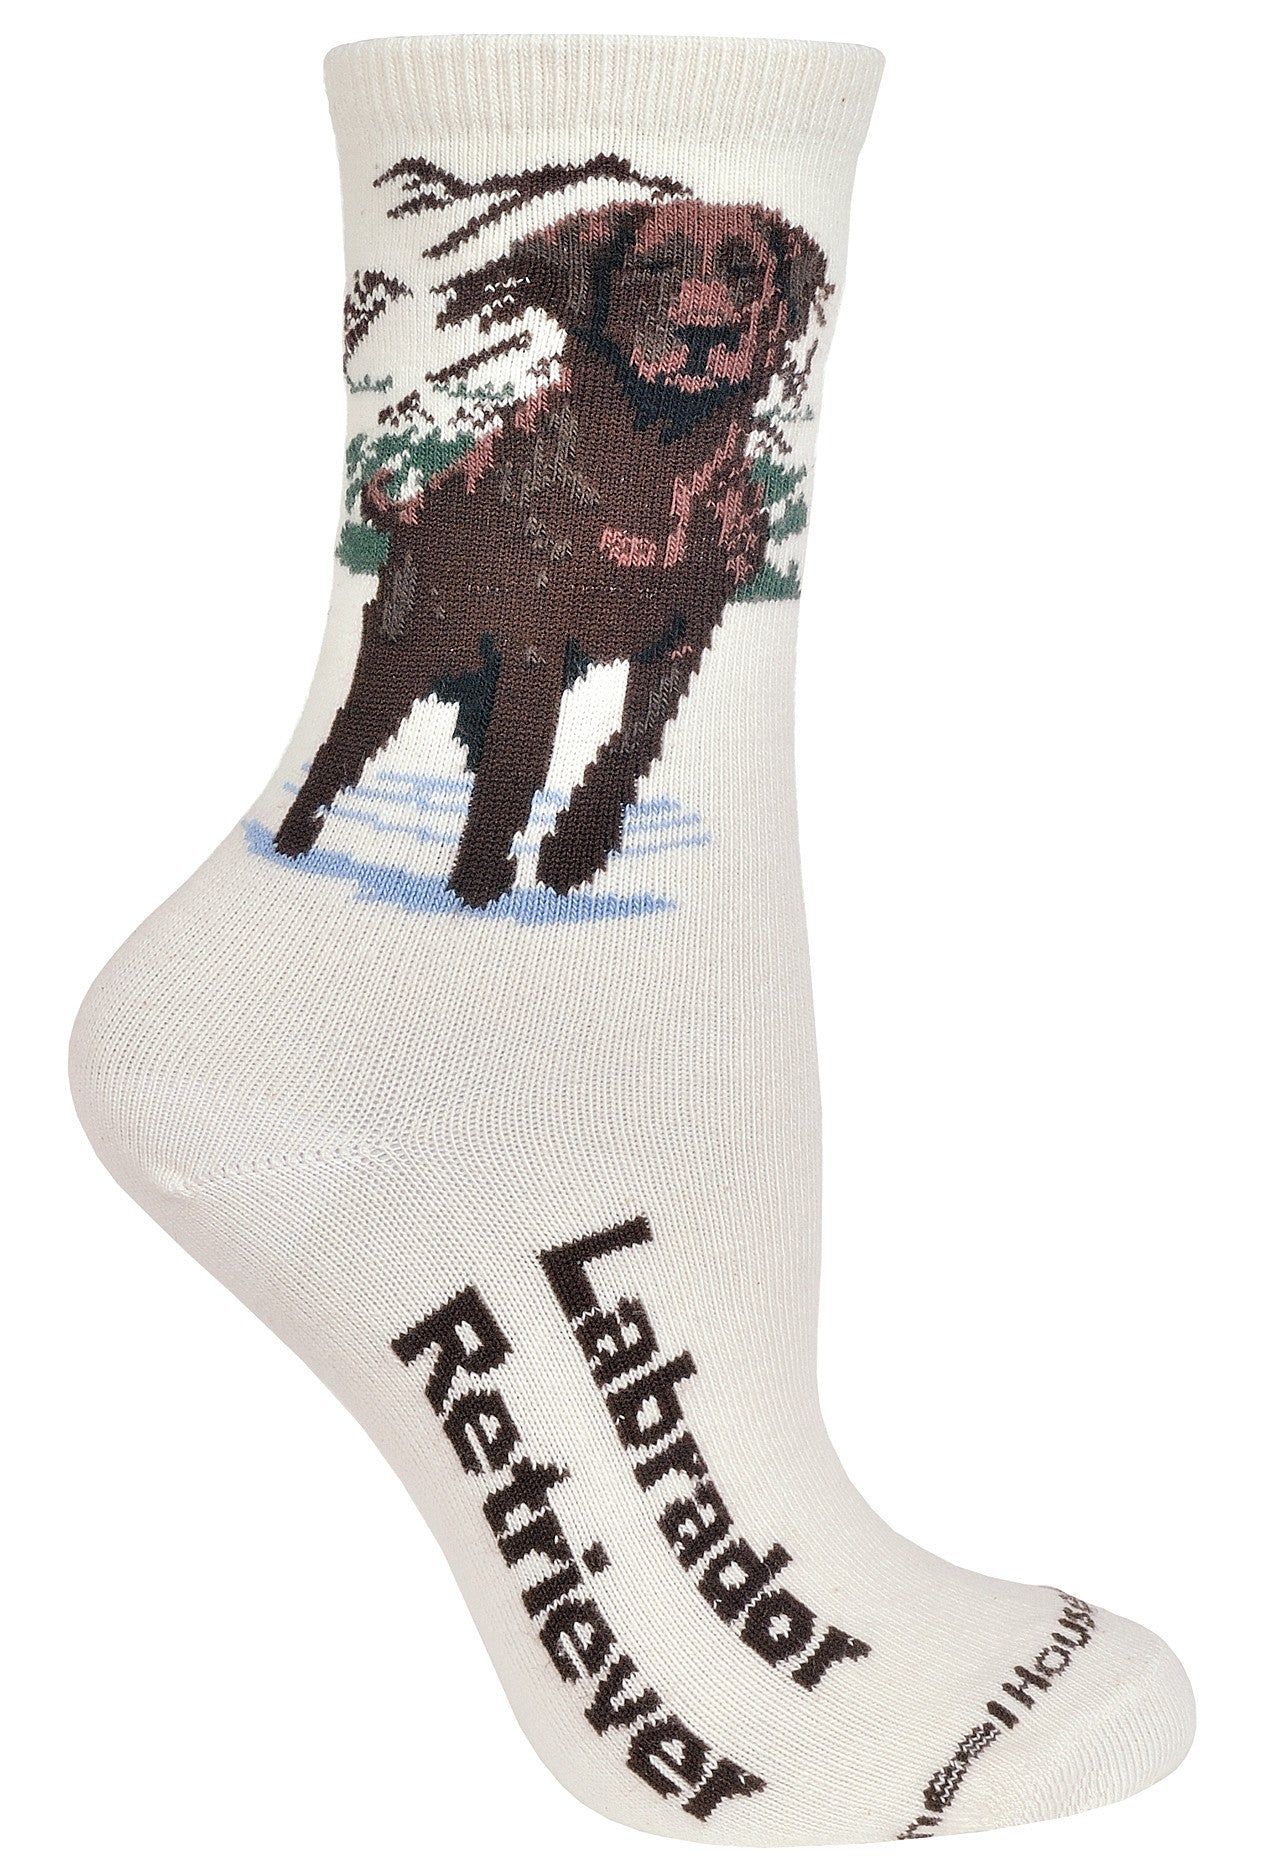 Chocolate Labrador Retriever on Natural Crew Socks